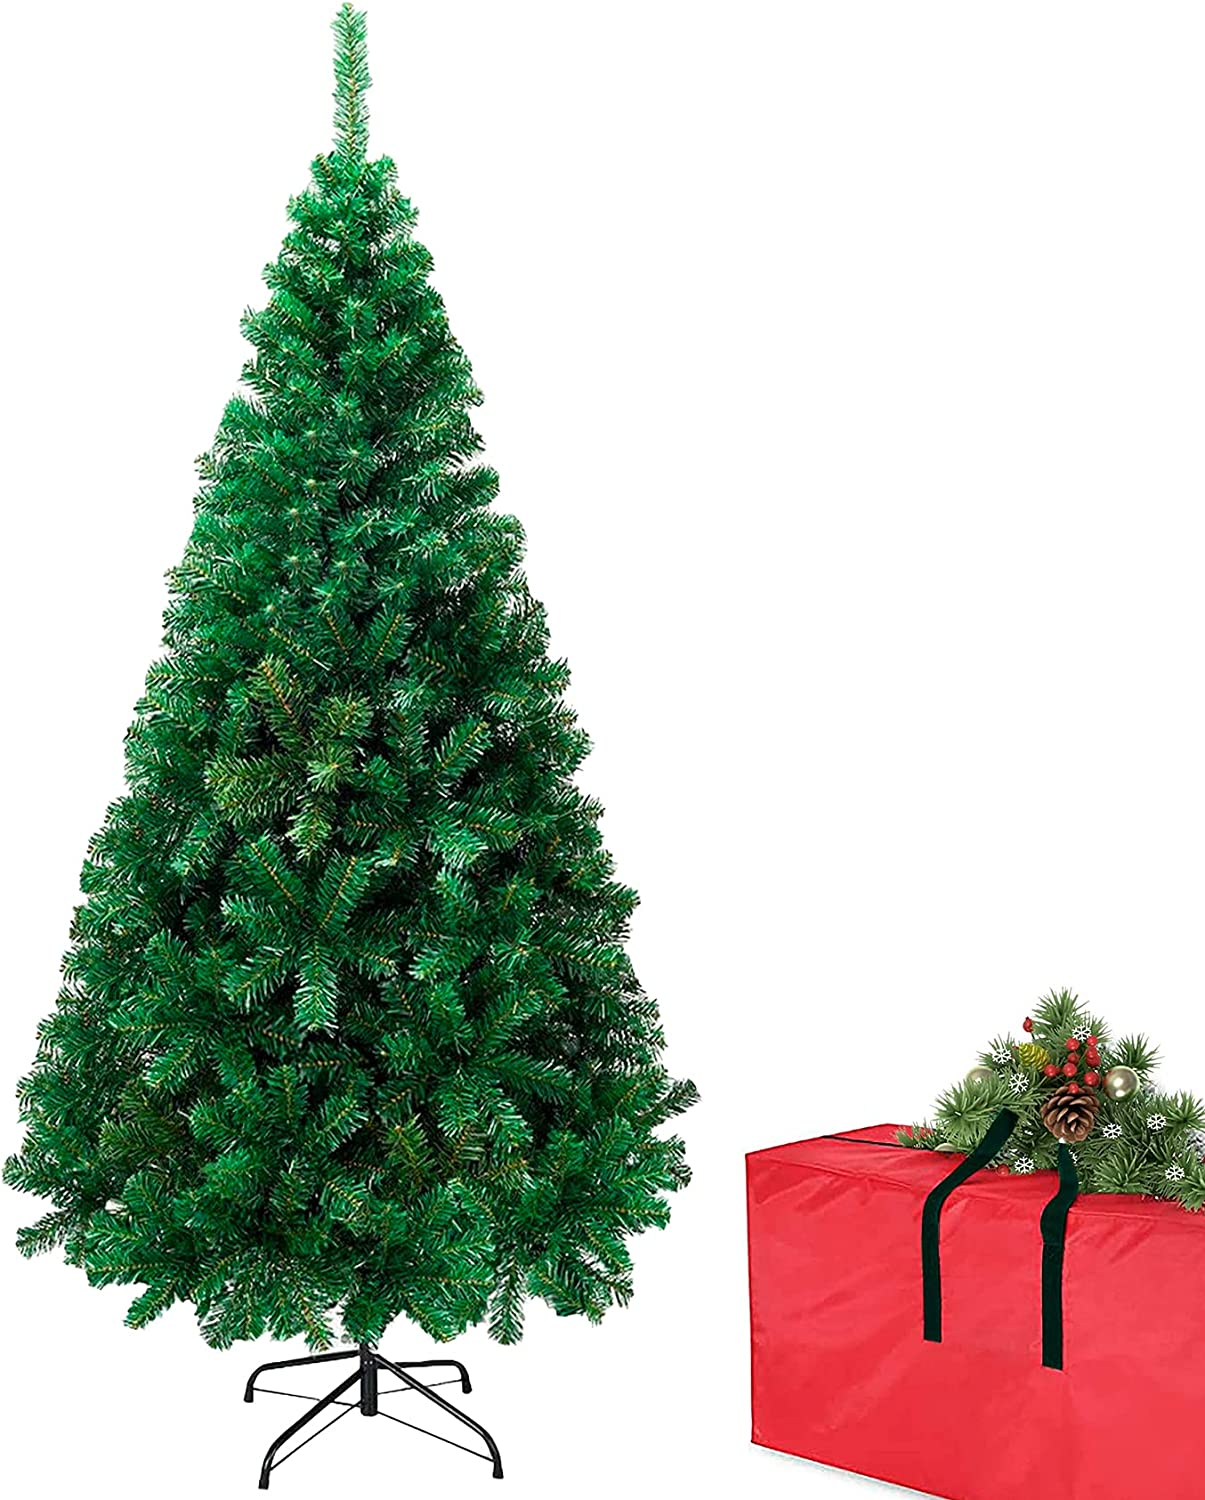 Christmas Artificial Tree Decorations, 5Ft Trees with Storage Bag, Easy Assembly Premium Spruce with 450 Branch Tips Decor for Holiday, Home, Indoor, Office, Arbolitos De Navidad Includes Metal Stand